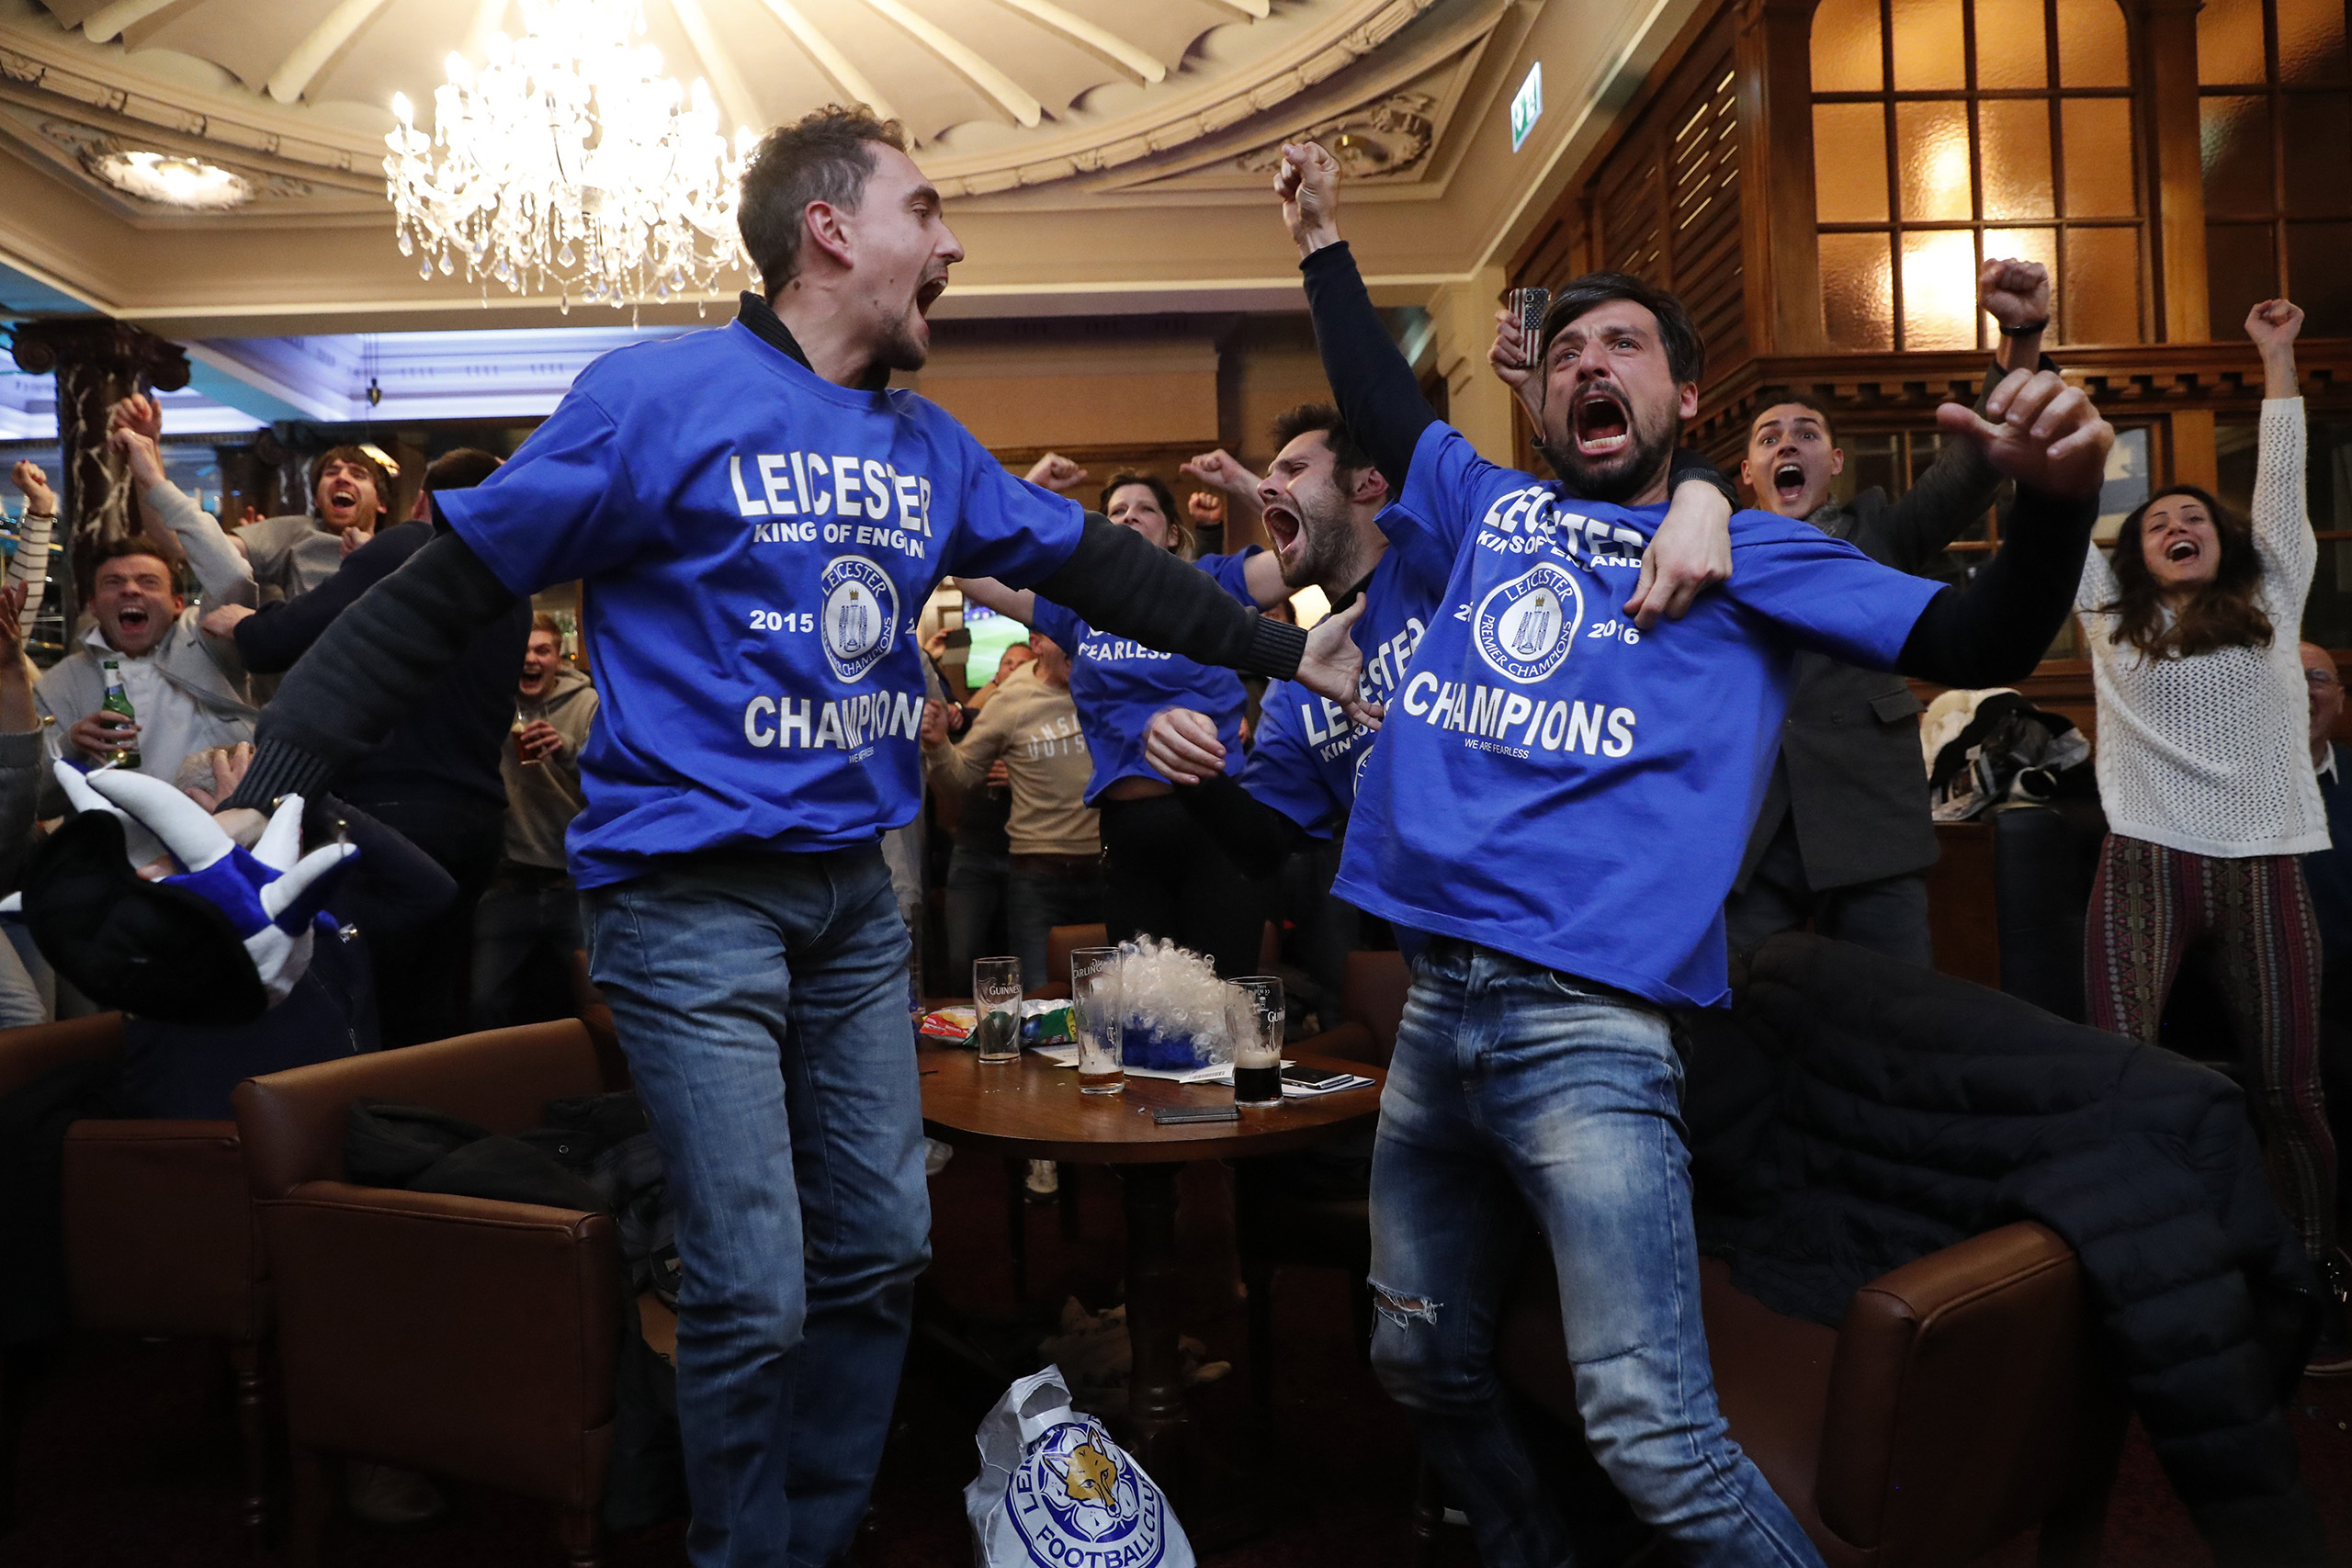 Leicester City fans celebrate after Chelsea's second goal against Tottenham Hotspur at a pub in Leicester, eastern England, May 2, 2016.